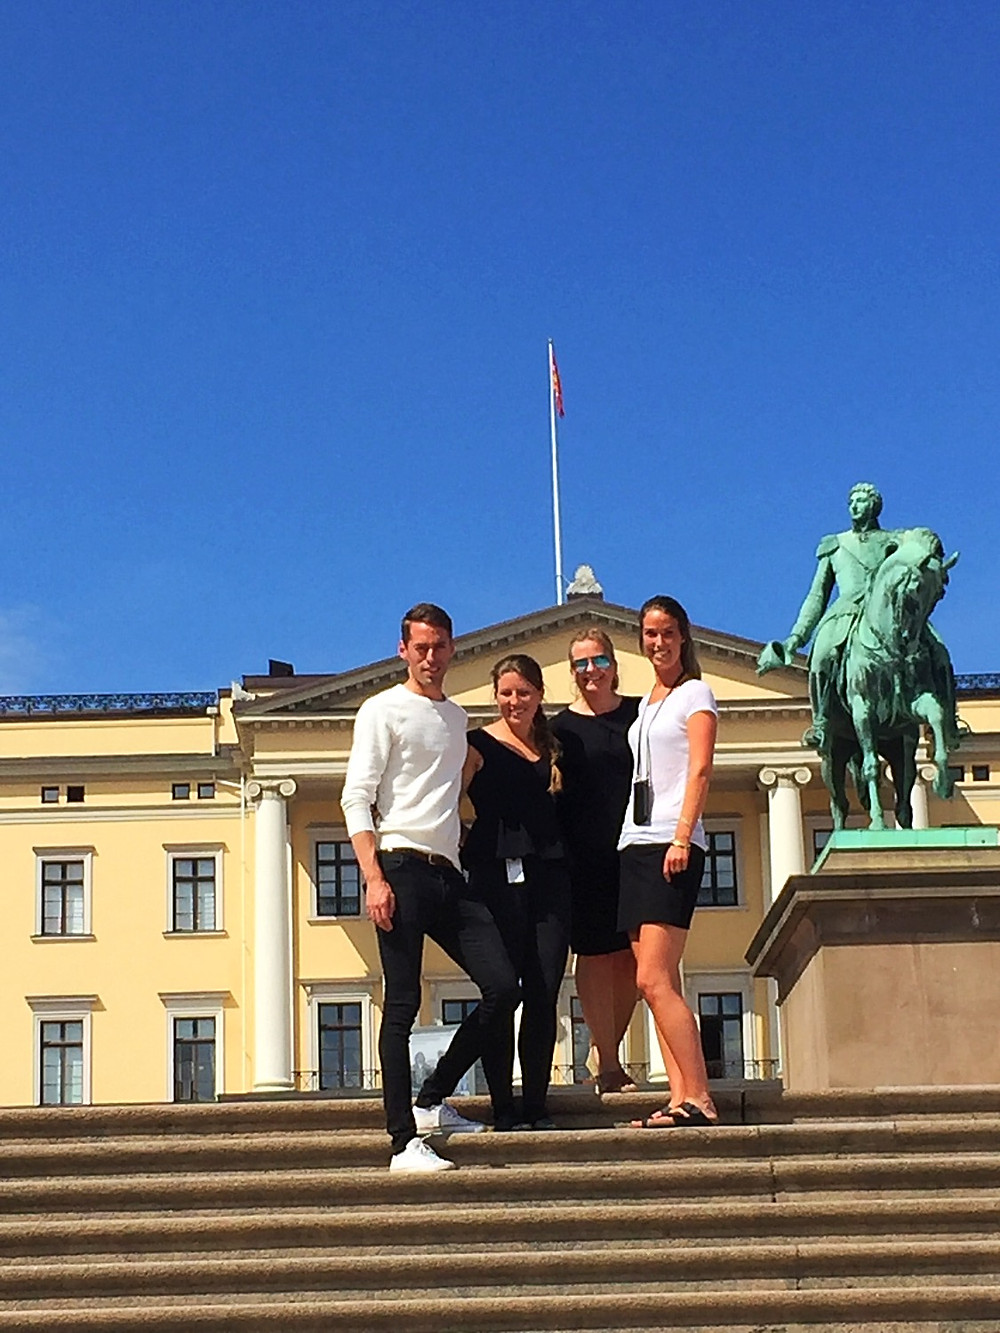 The Royal palace in Norway